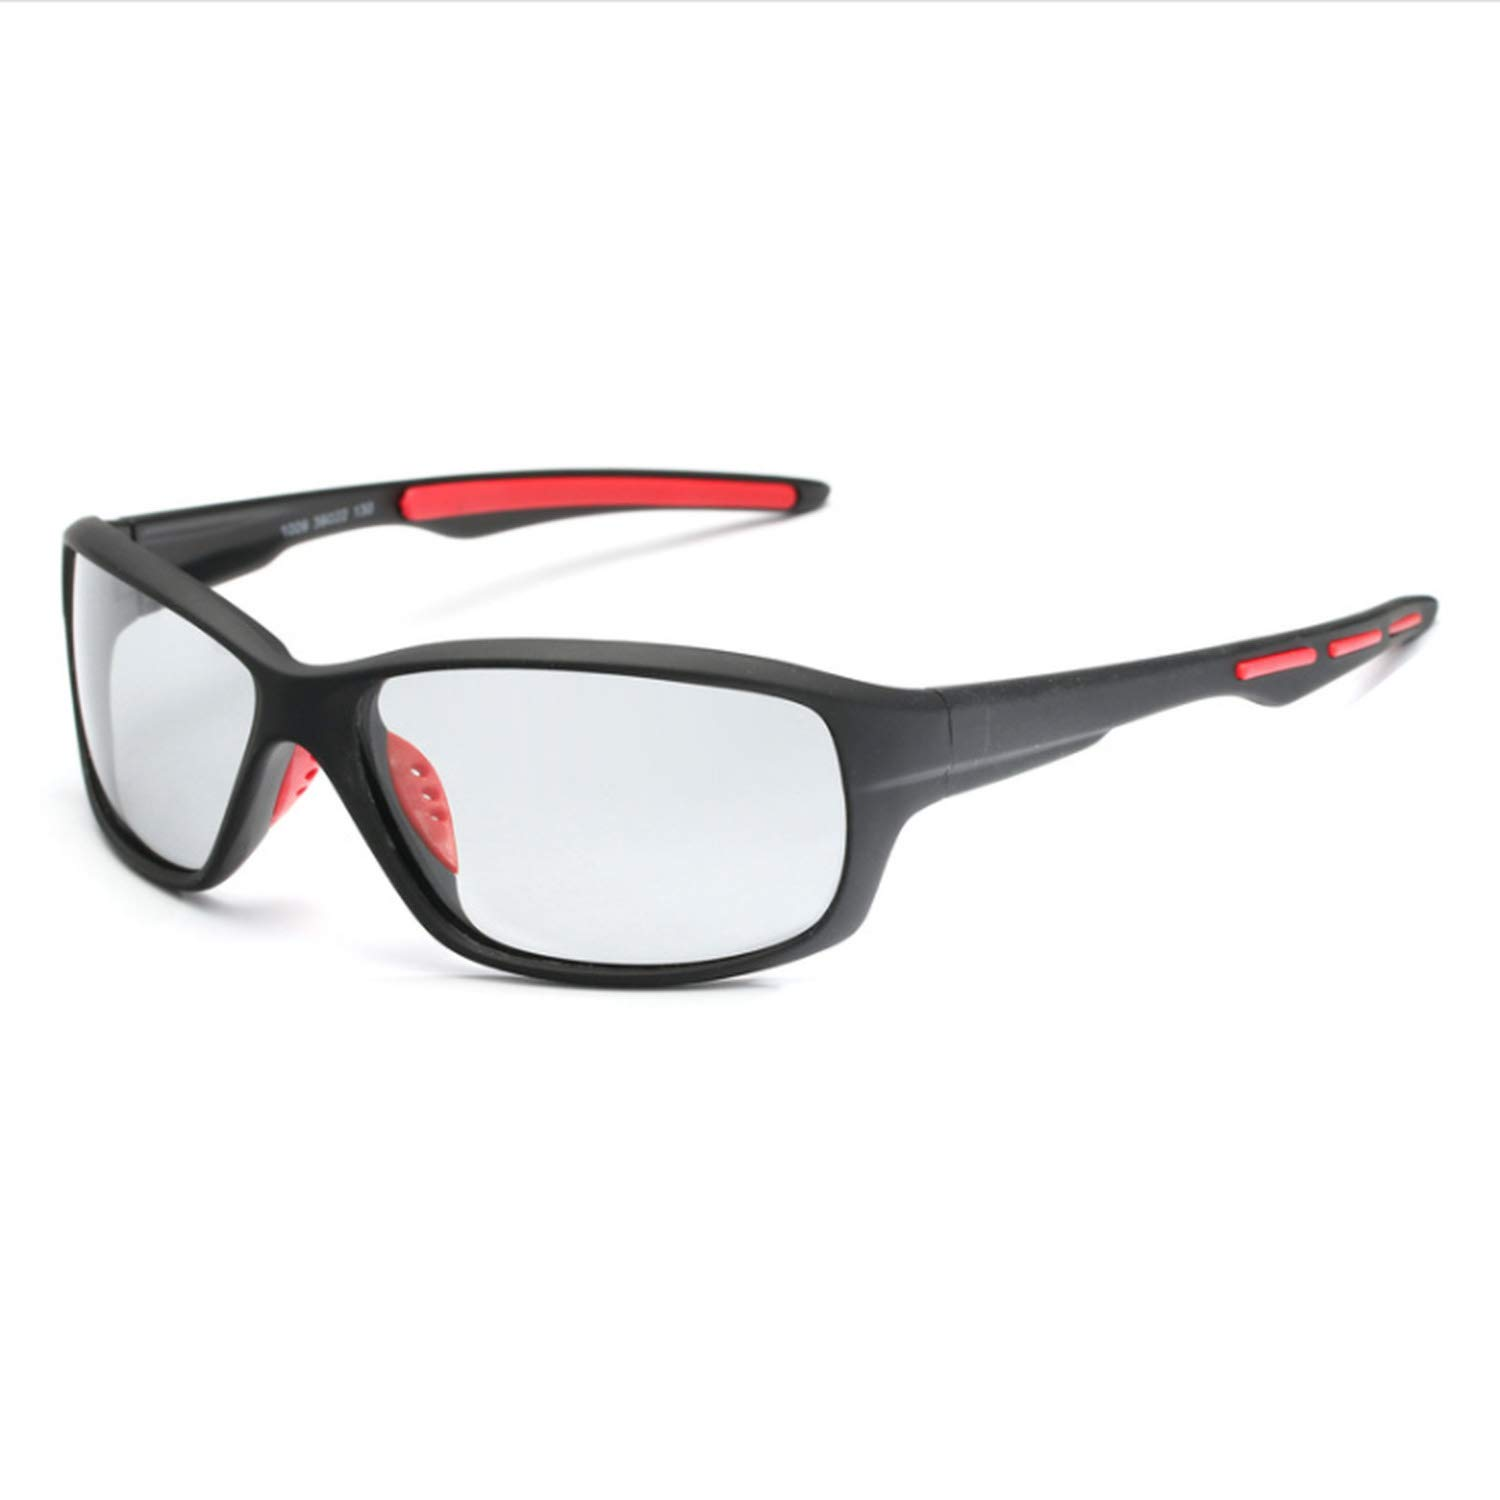 Sport Color-Changing Lenses Photochromic Polarized Glasses Bicycle Riding Fishing Cycling Sunglasses Outdoor Equipment